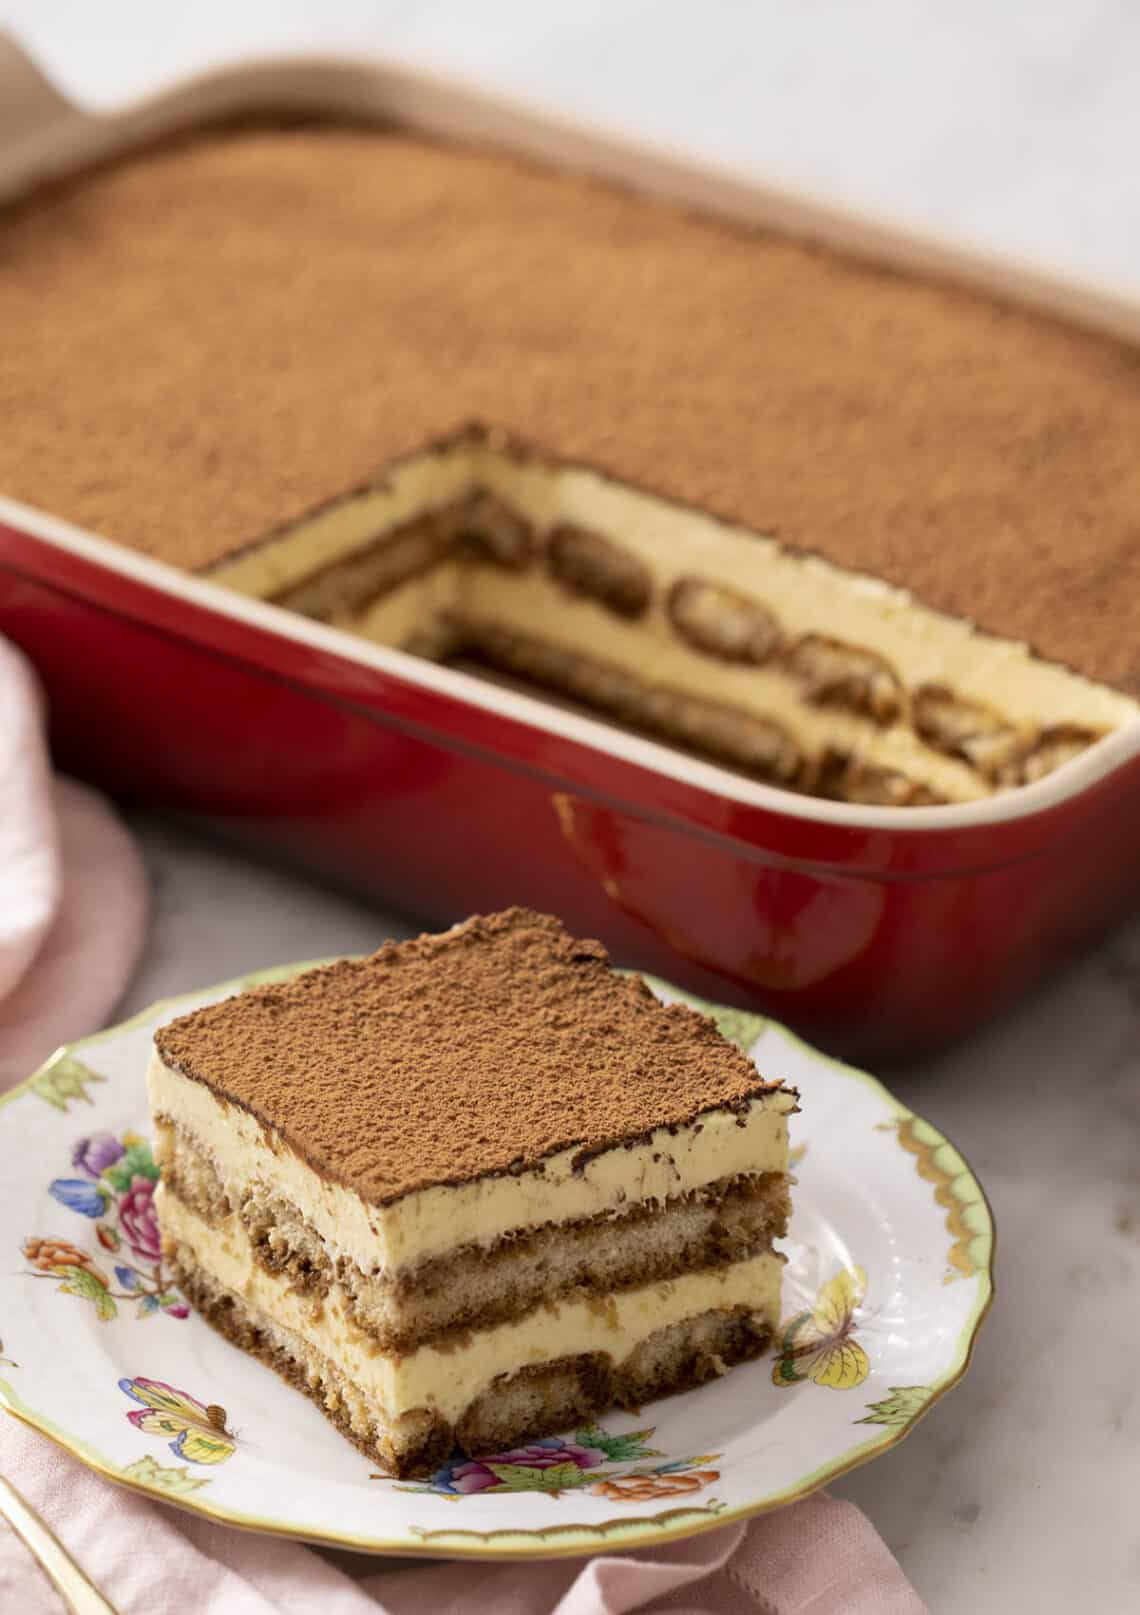 A piece of tiramisu in front of a red serving dish.